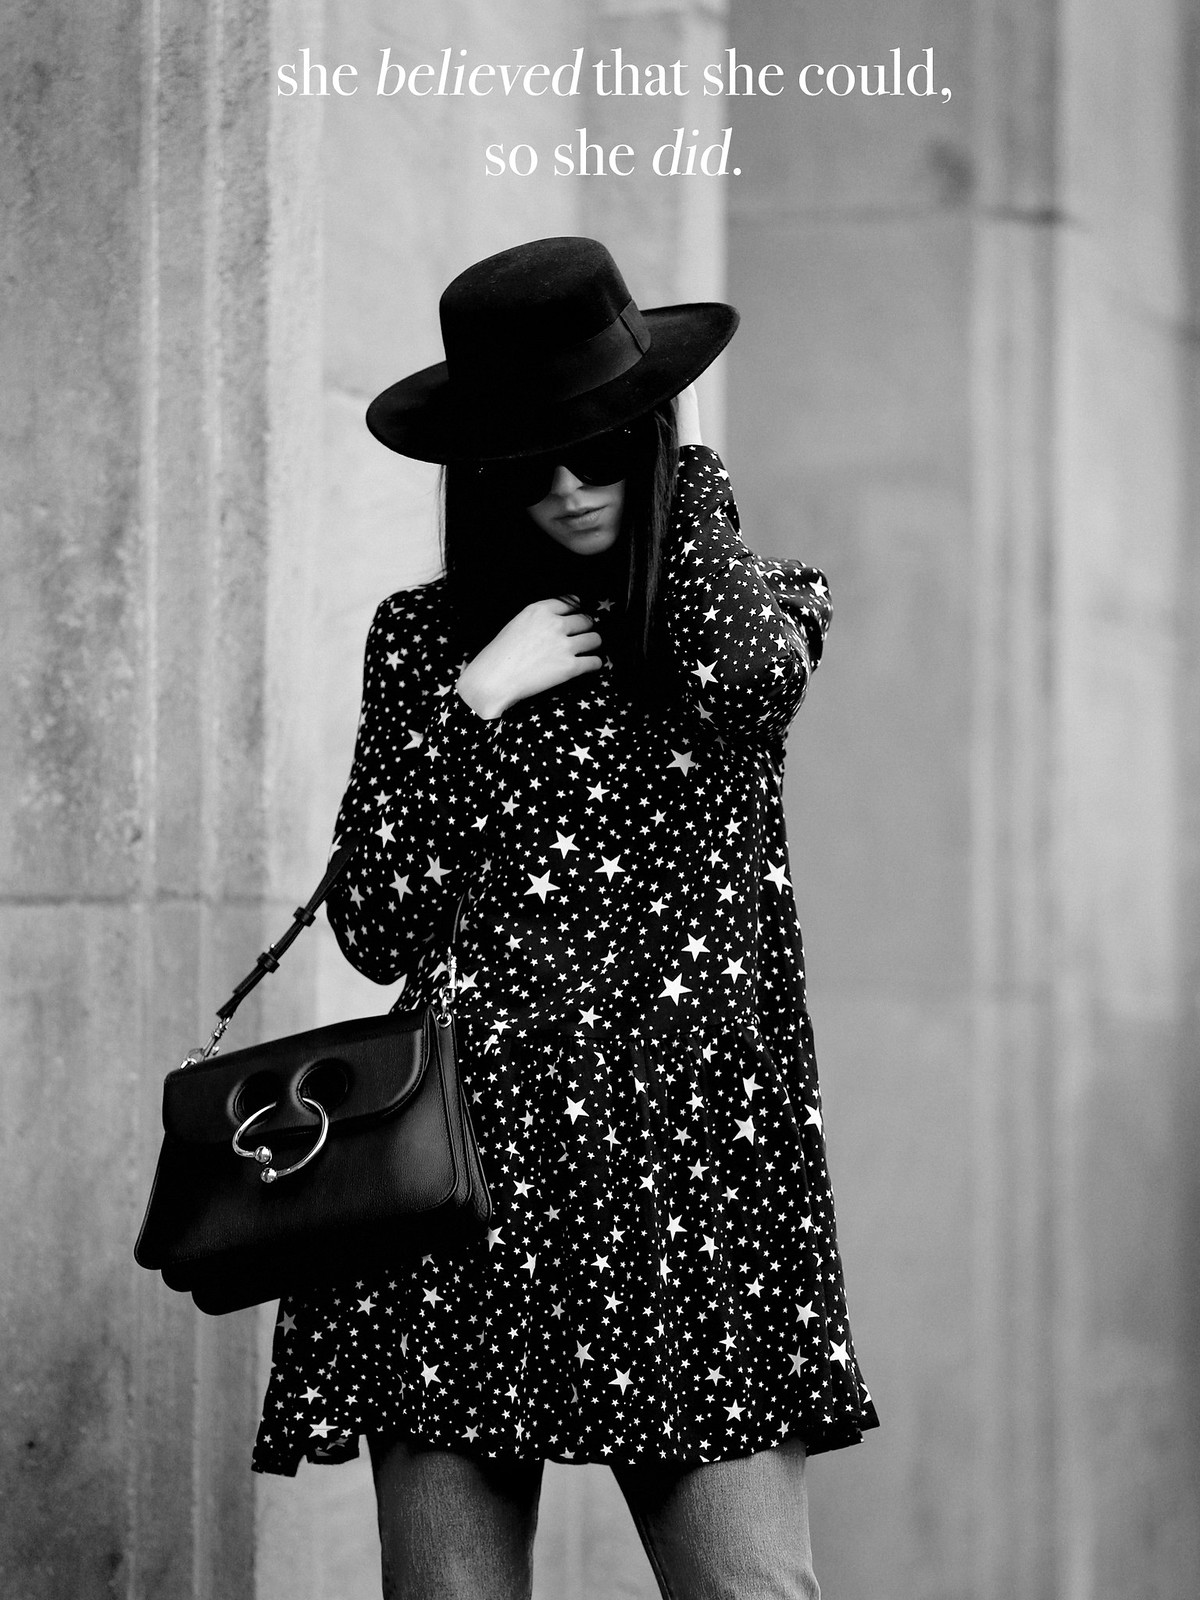 pimkie star dress zorro spanish hat hut kleidchen black allblack piercebag j.w.anderson mytheresa luxury shopping luxe céline audrey sunglasses blogger style fashionblogger germany berlin bloggers cats & dogs düsseldorf modeblog ricarda schernus fashion 6